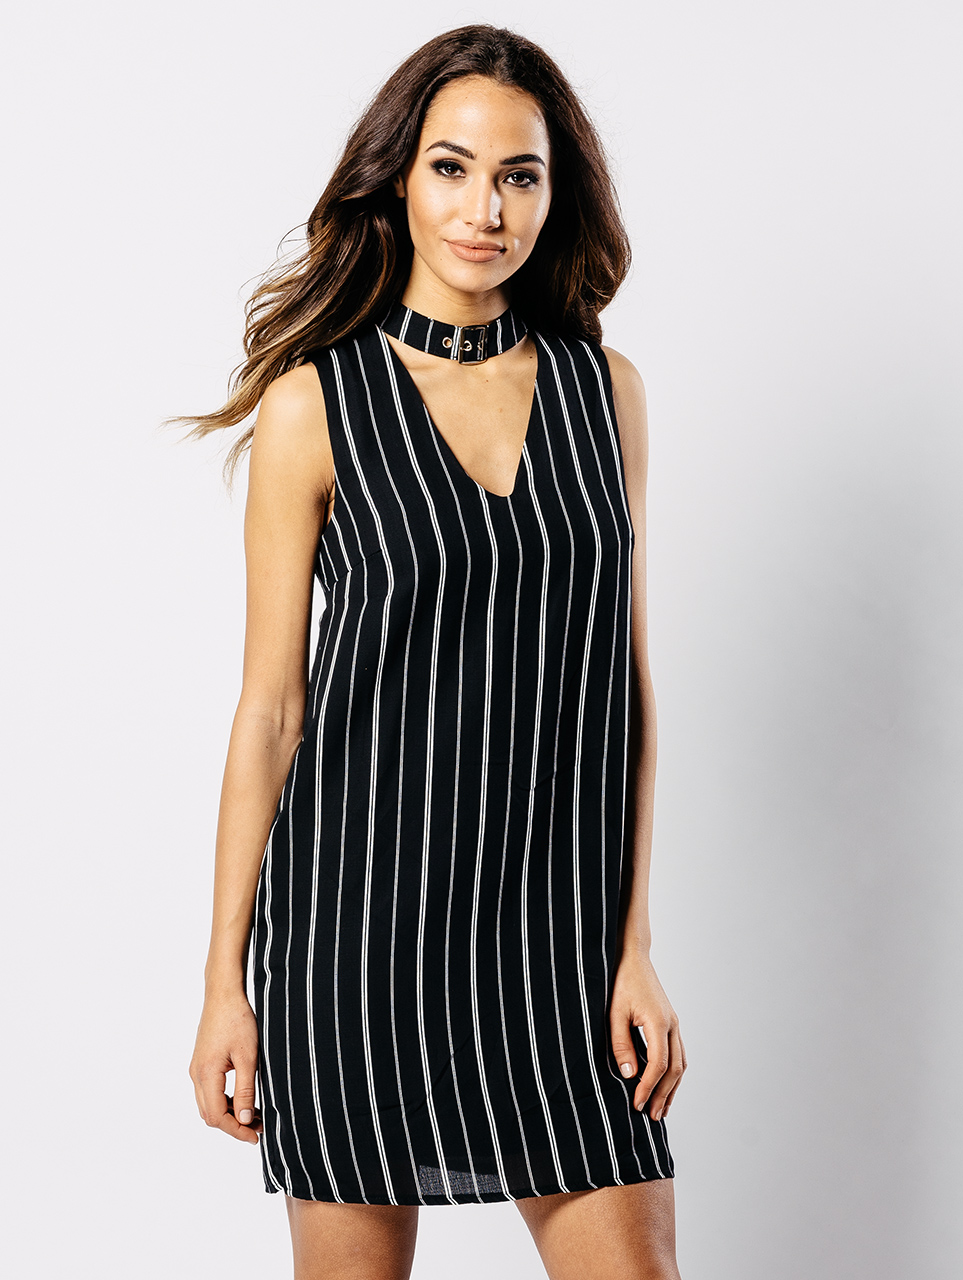 Black Buckle Choker Cocktail Dress Dress